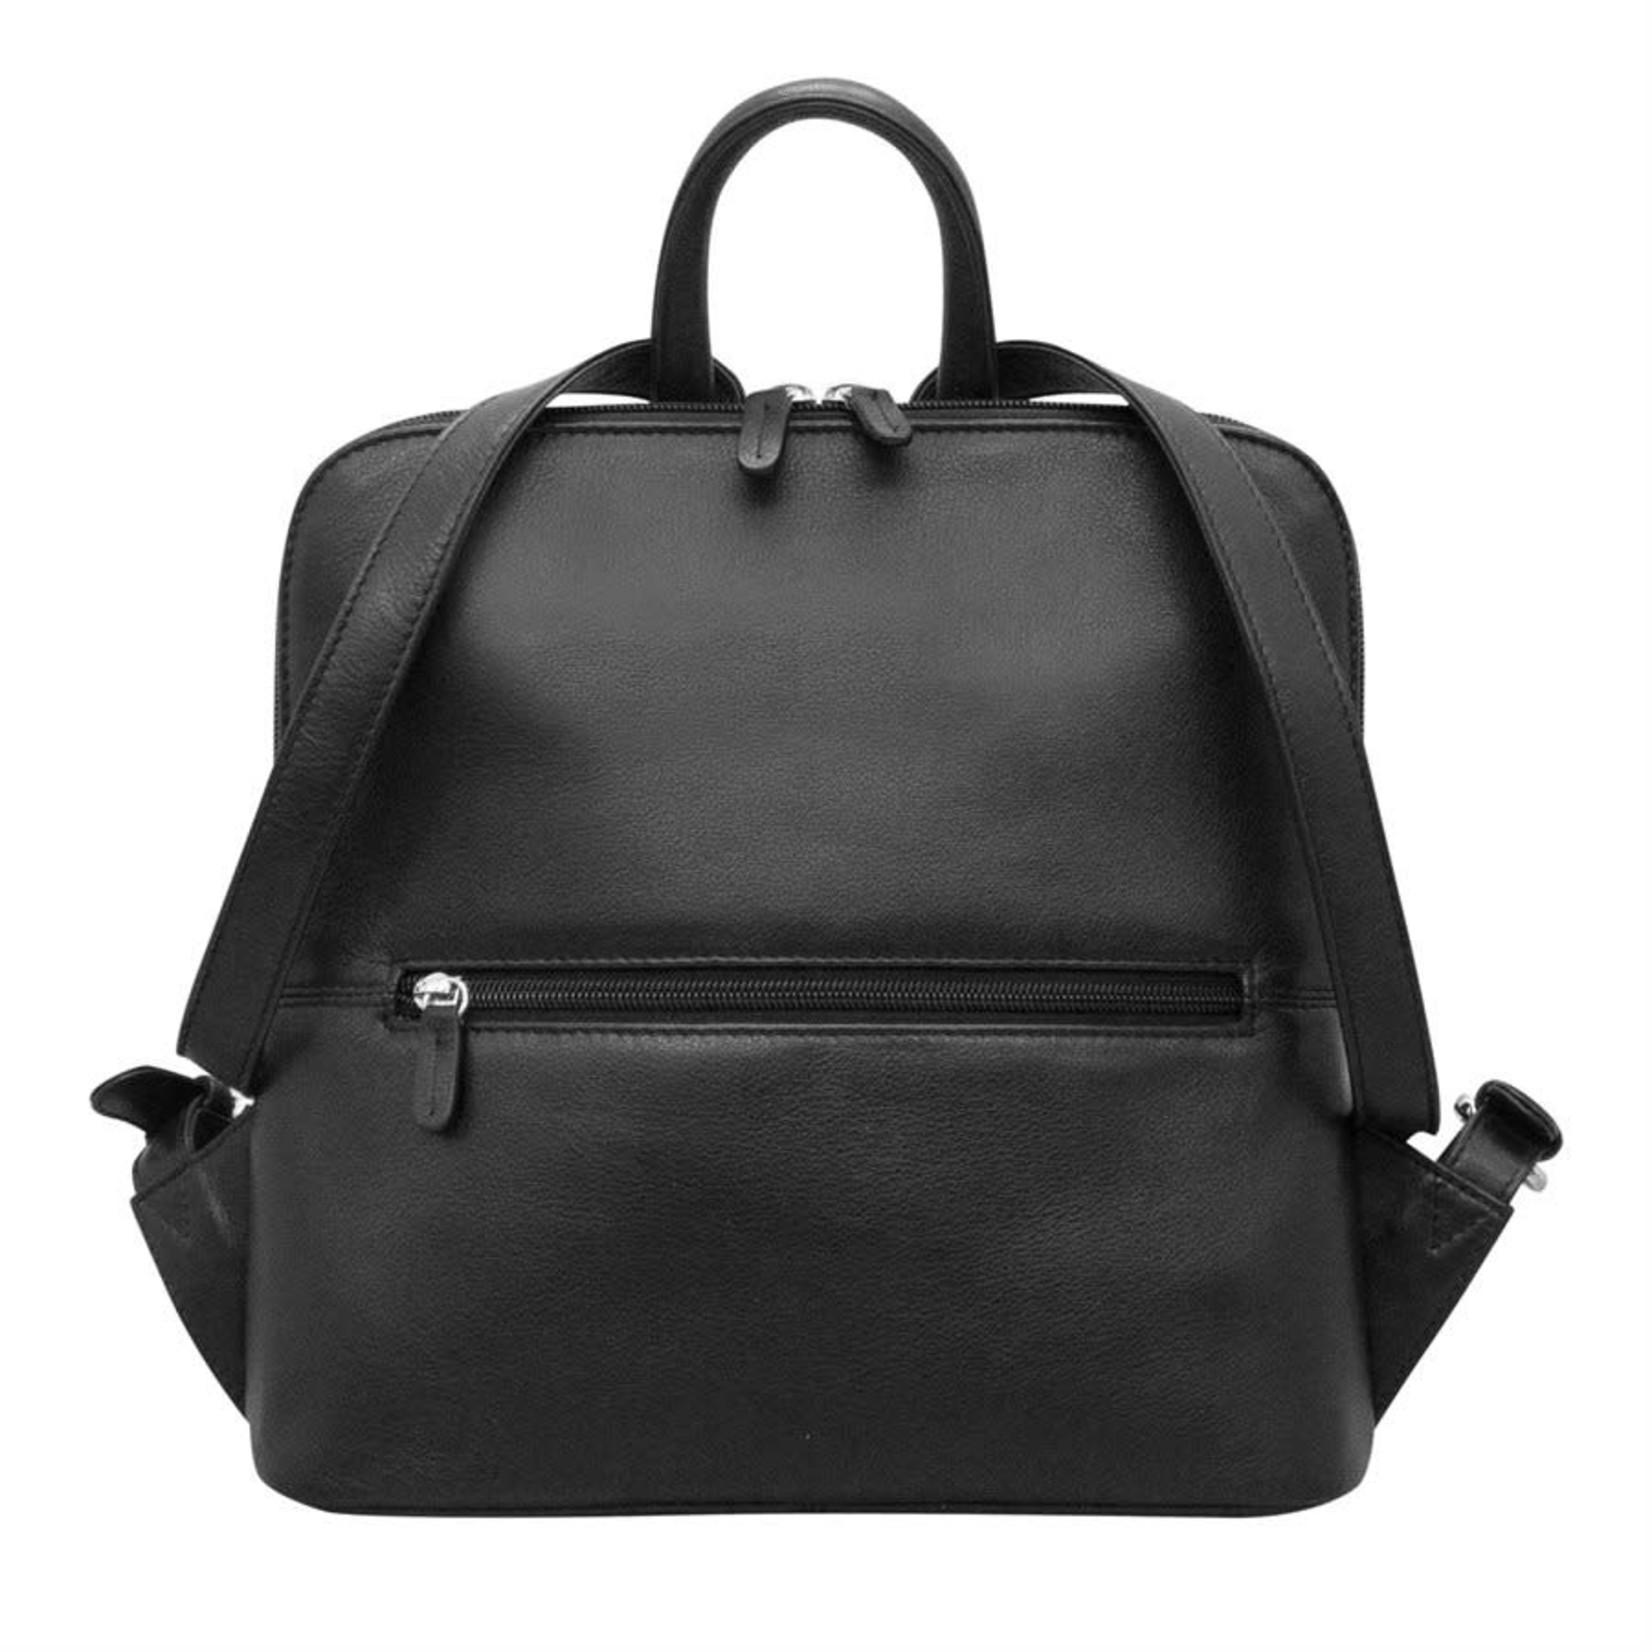 Leather Handbags and Accessories 6503 Black - Small Backpack